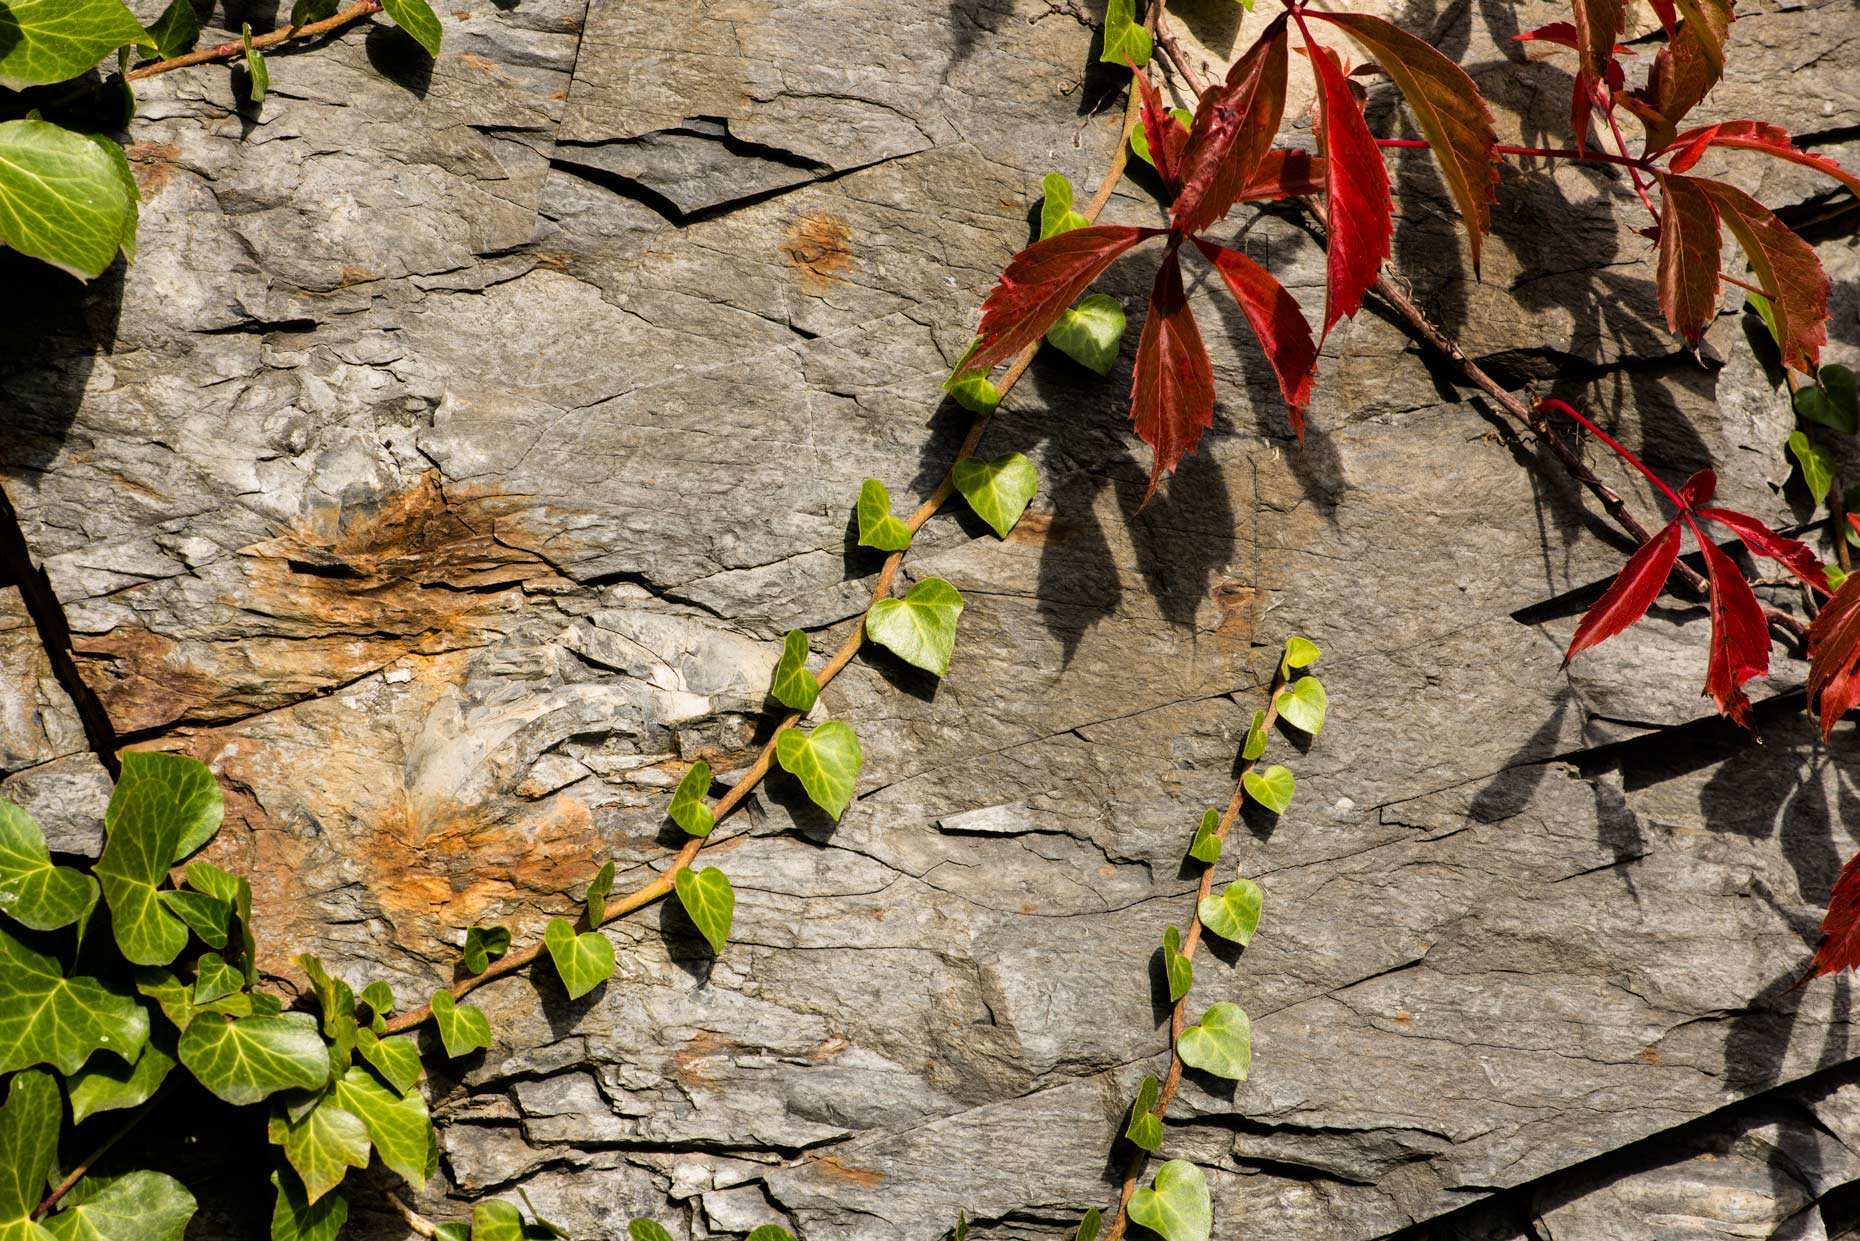 Red Vine reaching accross stone